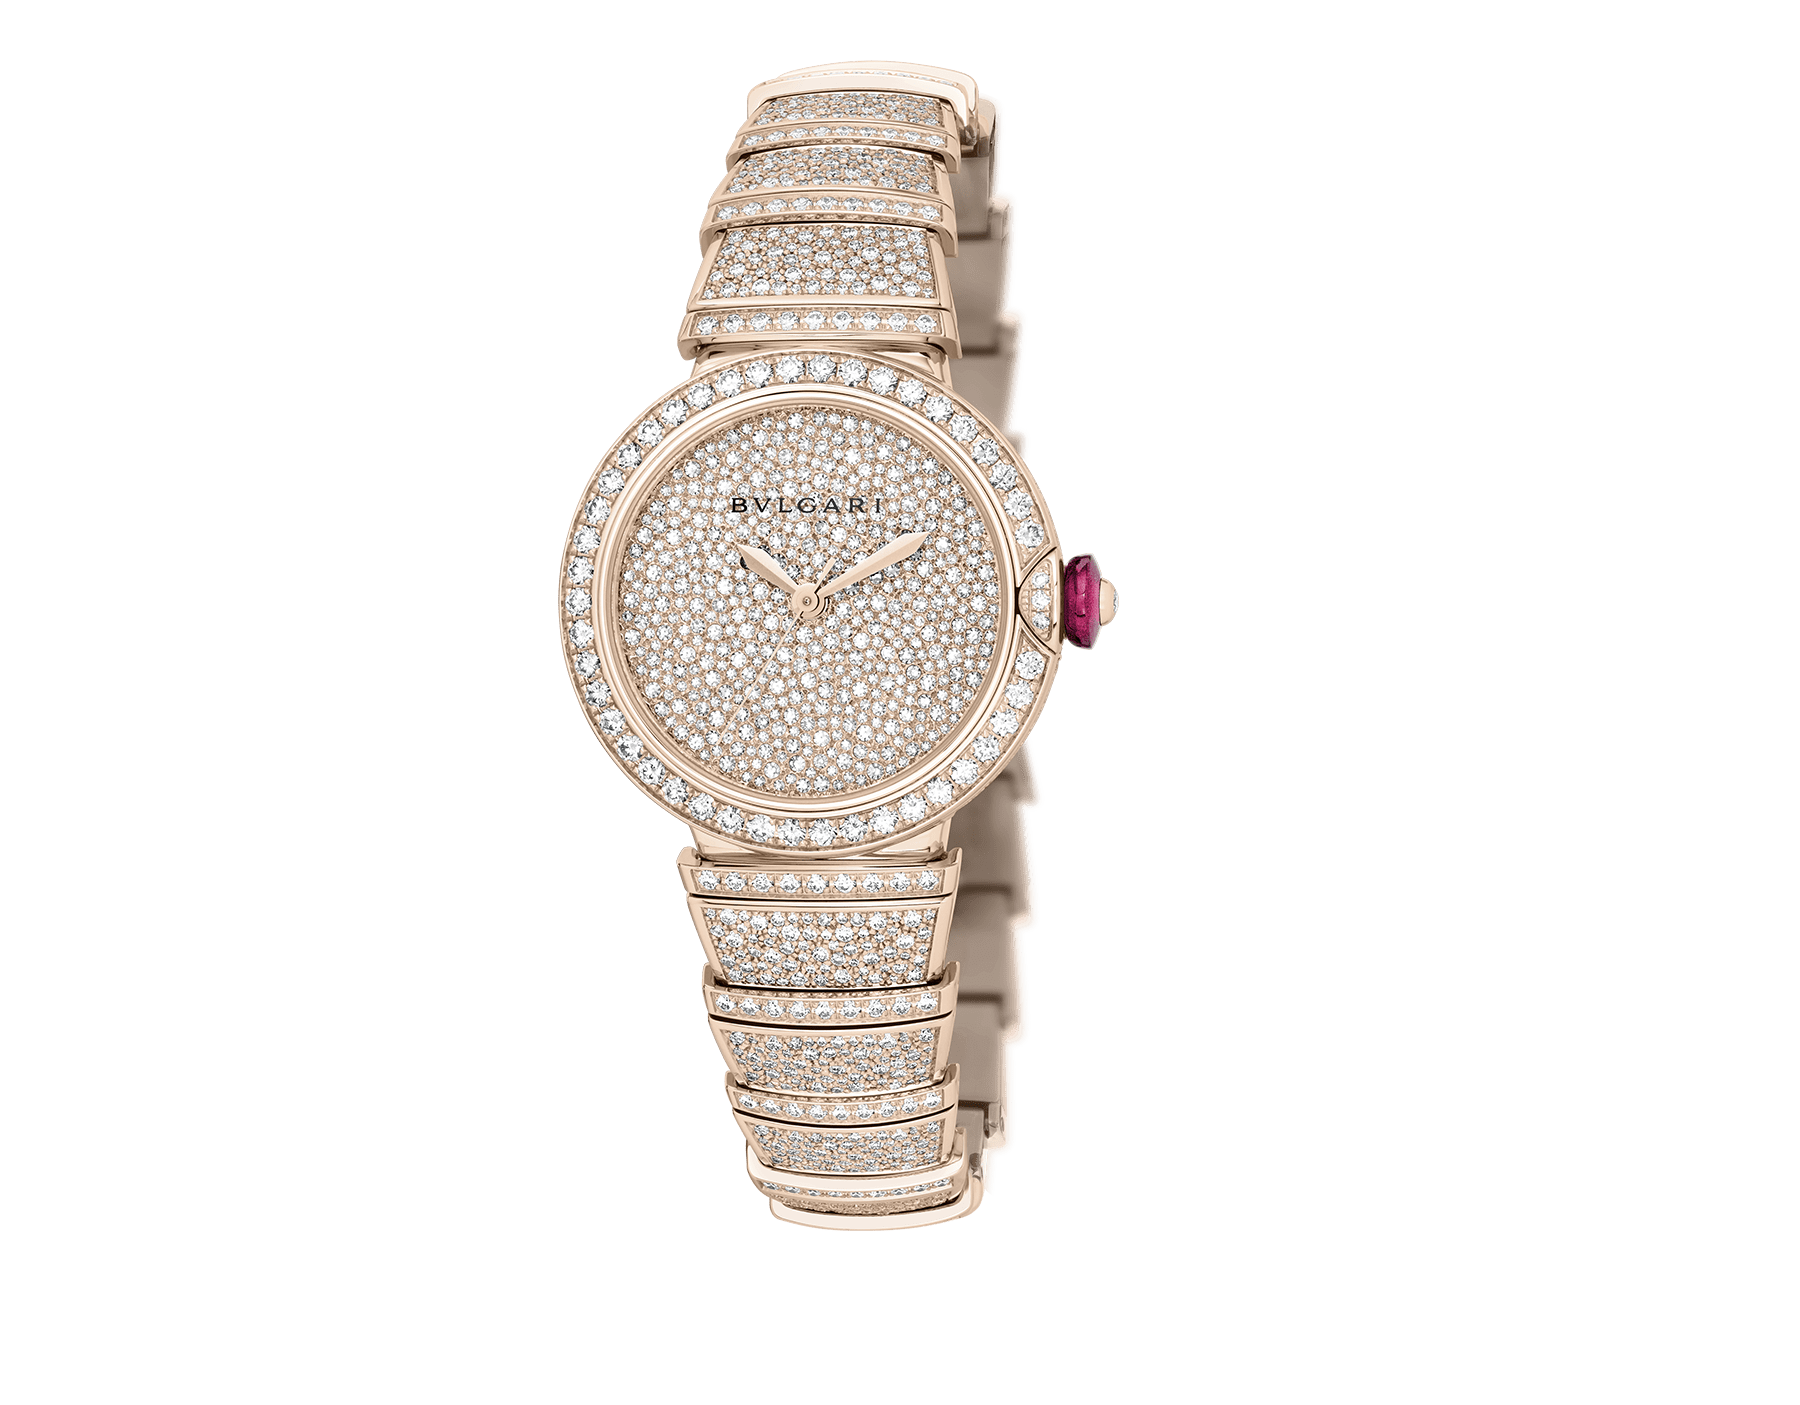 LVCEA watch in 18kt rose gold case and bracelet, both set with brilliant-cut diamonds, and full pavé diamond dial. 102617 image 2